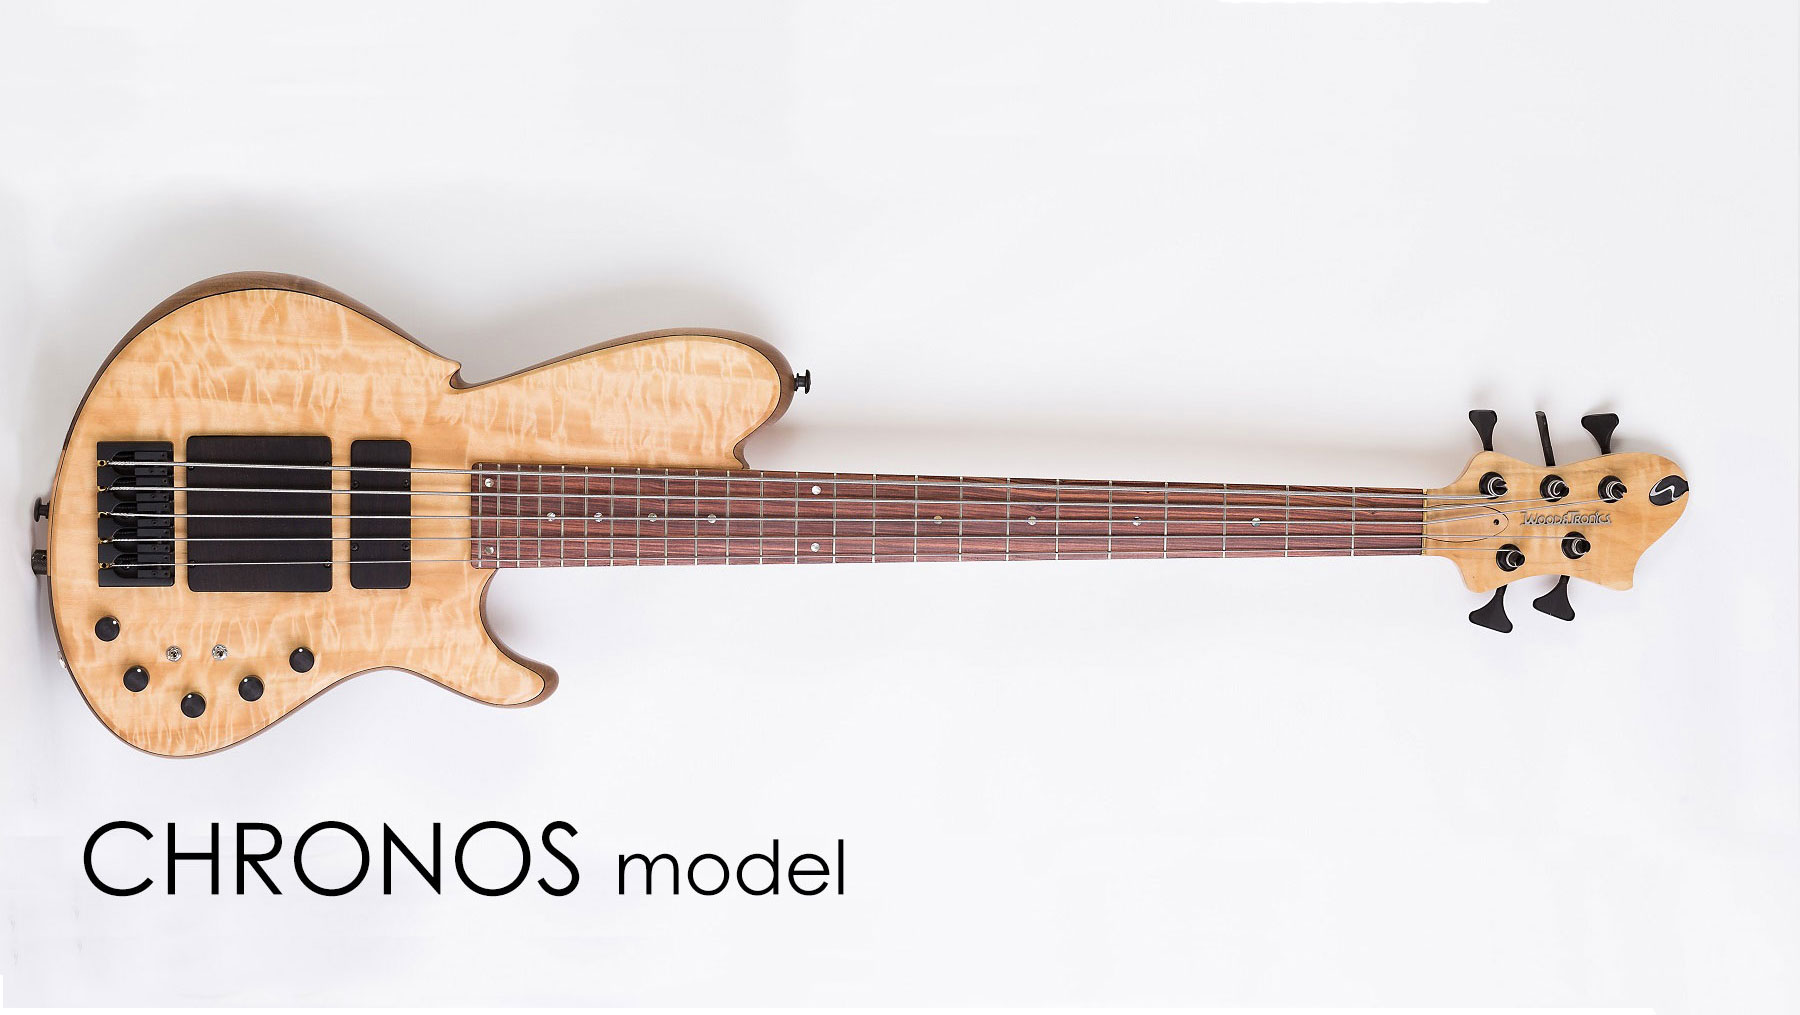 chronos model specification